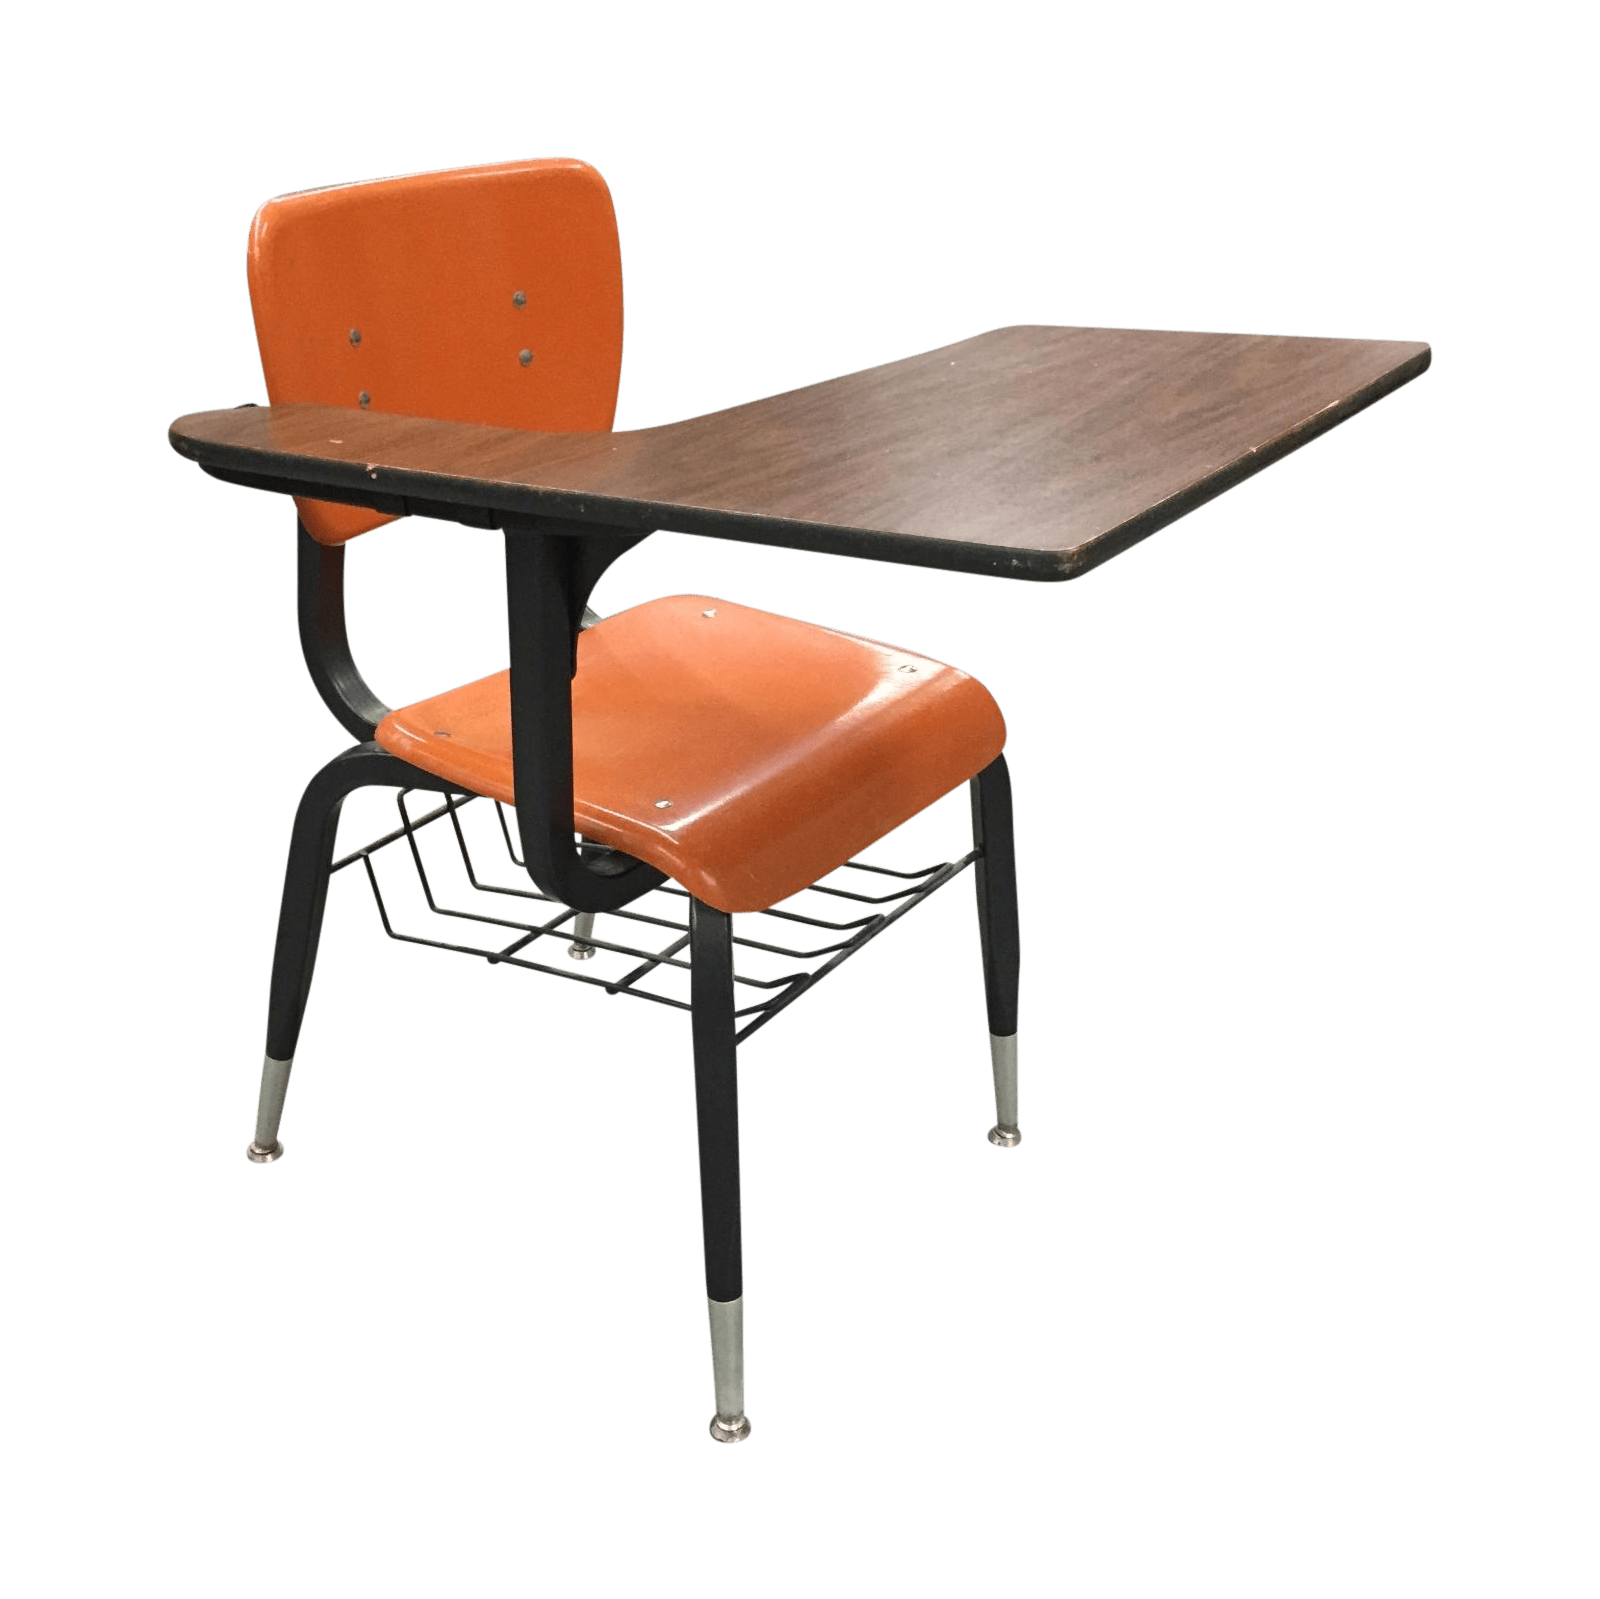 School Desk And Chair Vintage Orange School Desk Chair Chairish